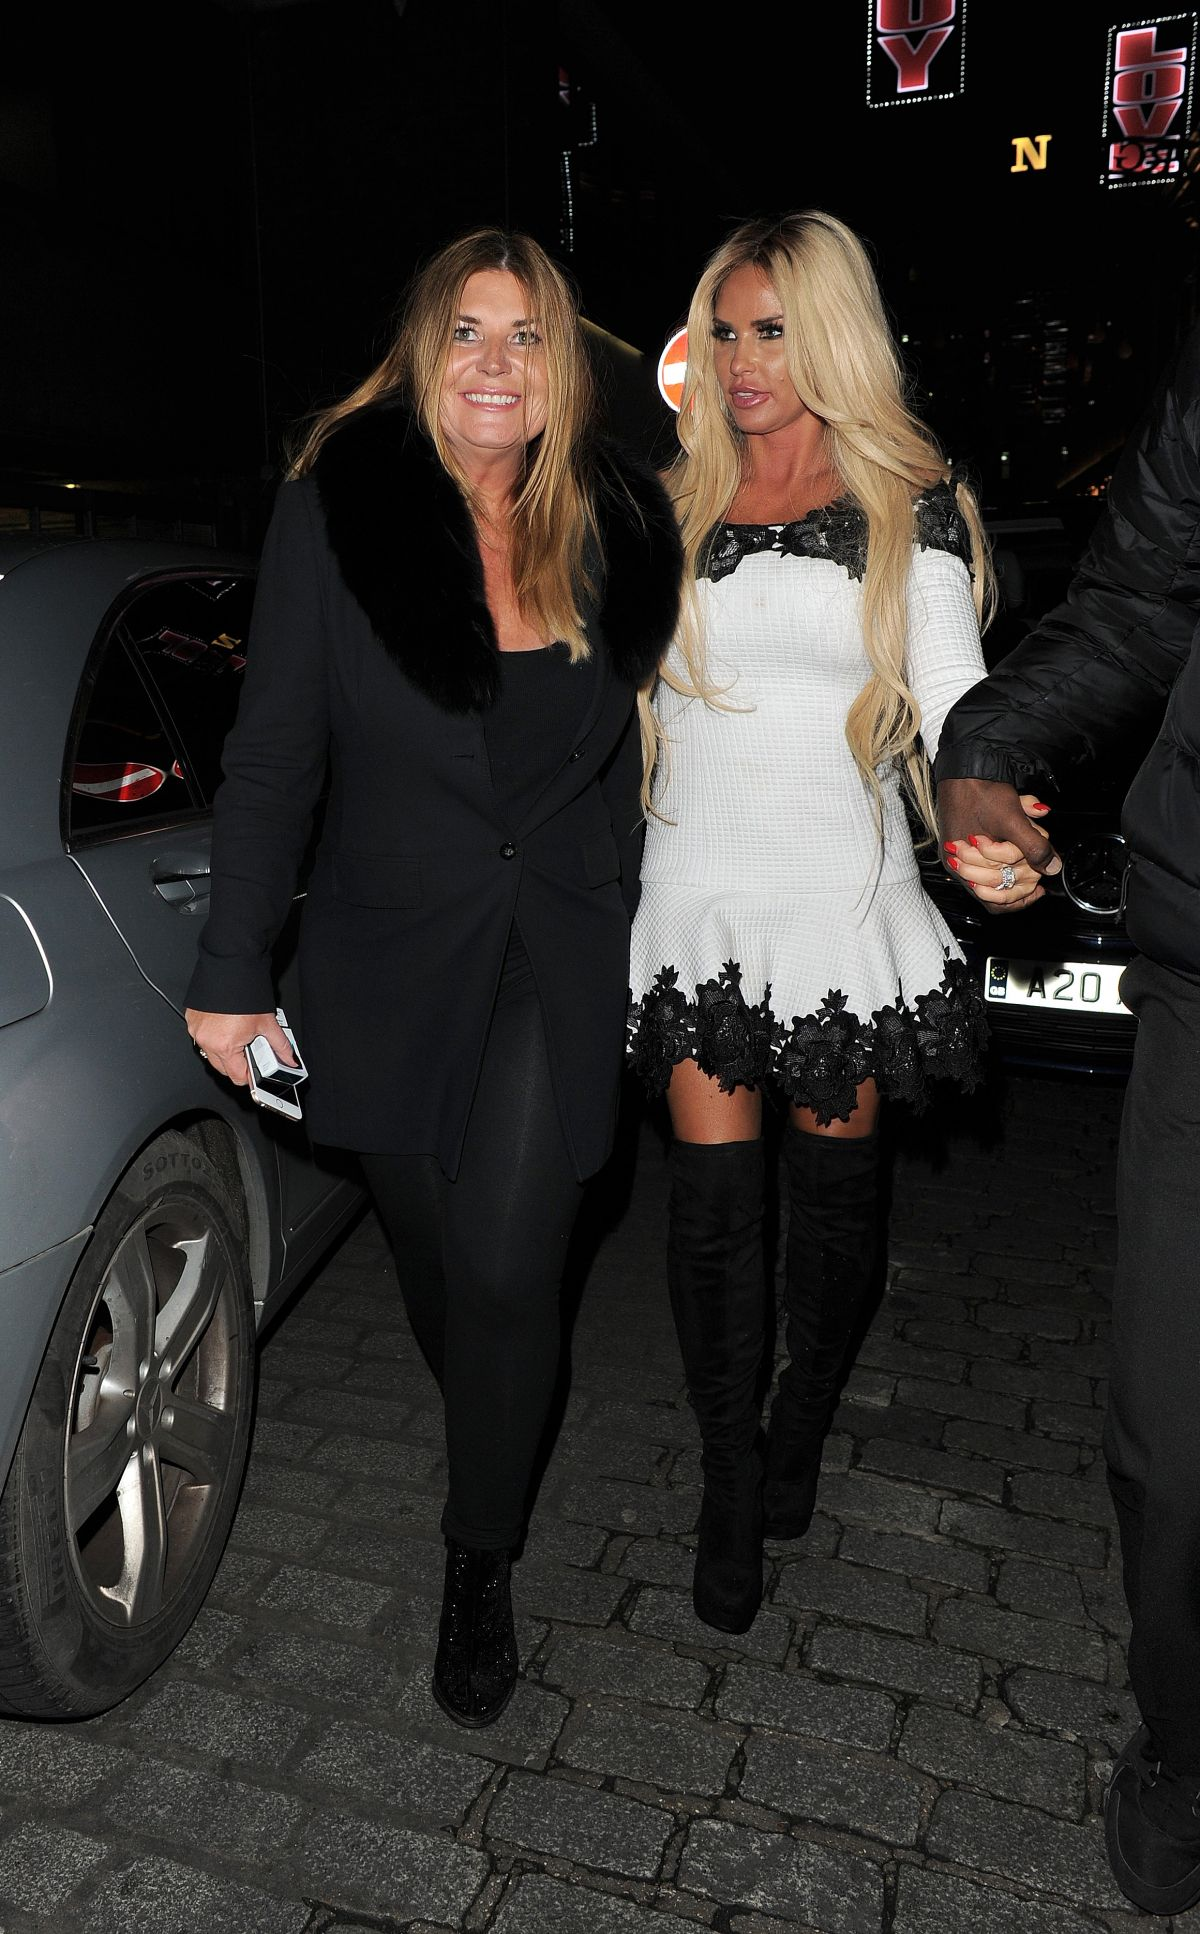 Katie Price Out for the evening in London   katie-price-out-for-the-evening-in-london_13